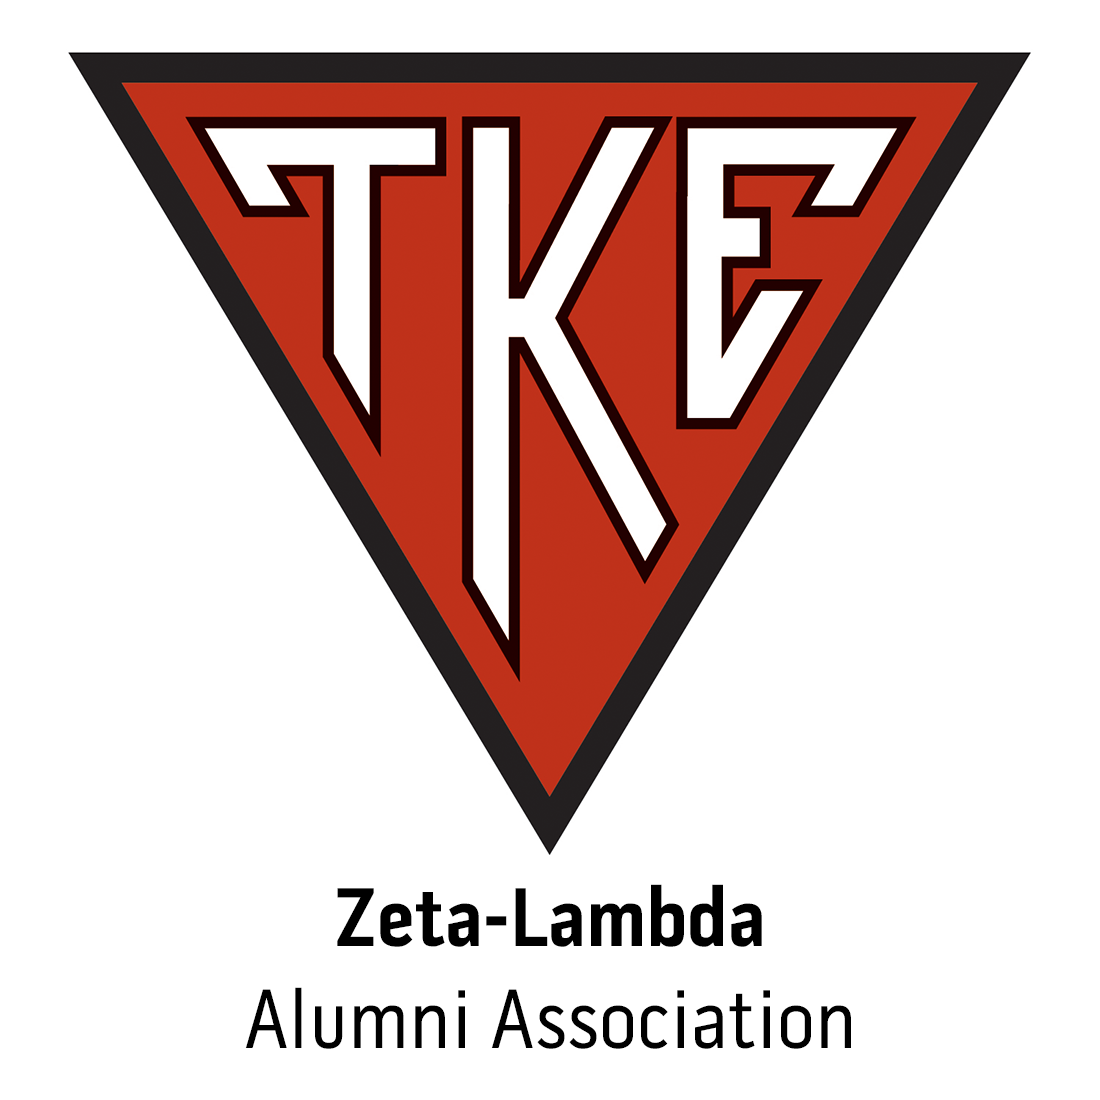 Zeta-Lambda Alumni Association for Bowling Green State University